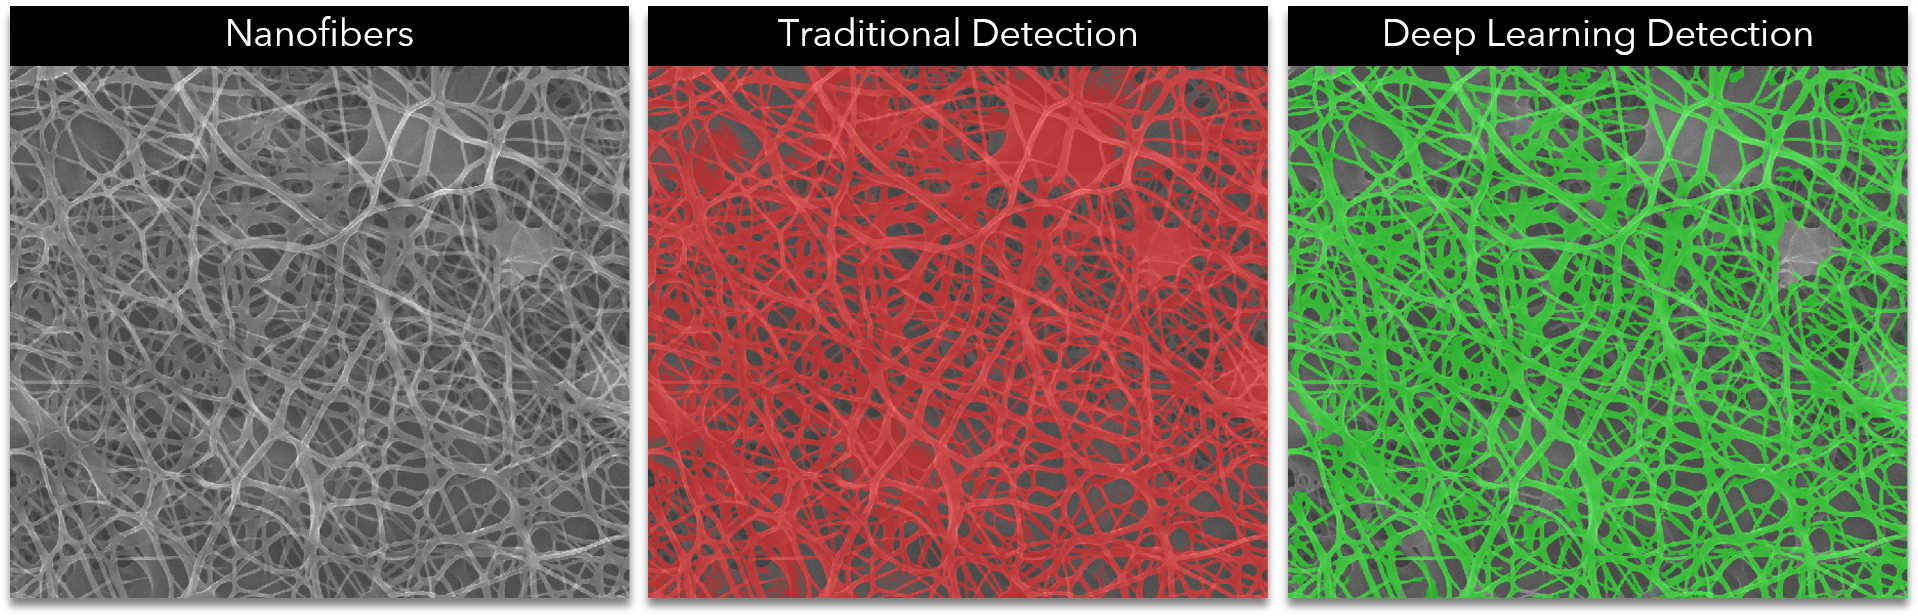 Overlapping nanofiber networks have little contrast with the background